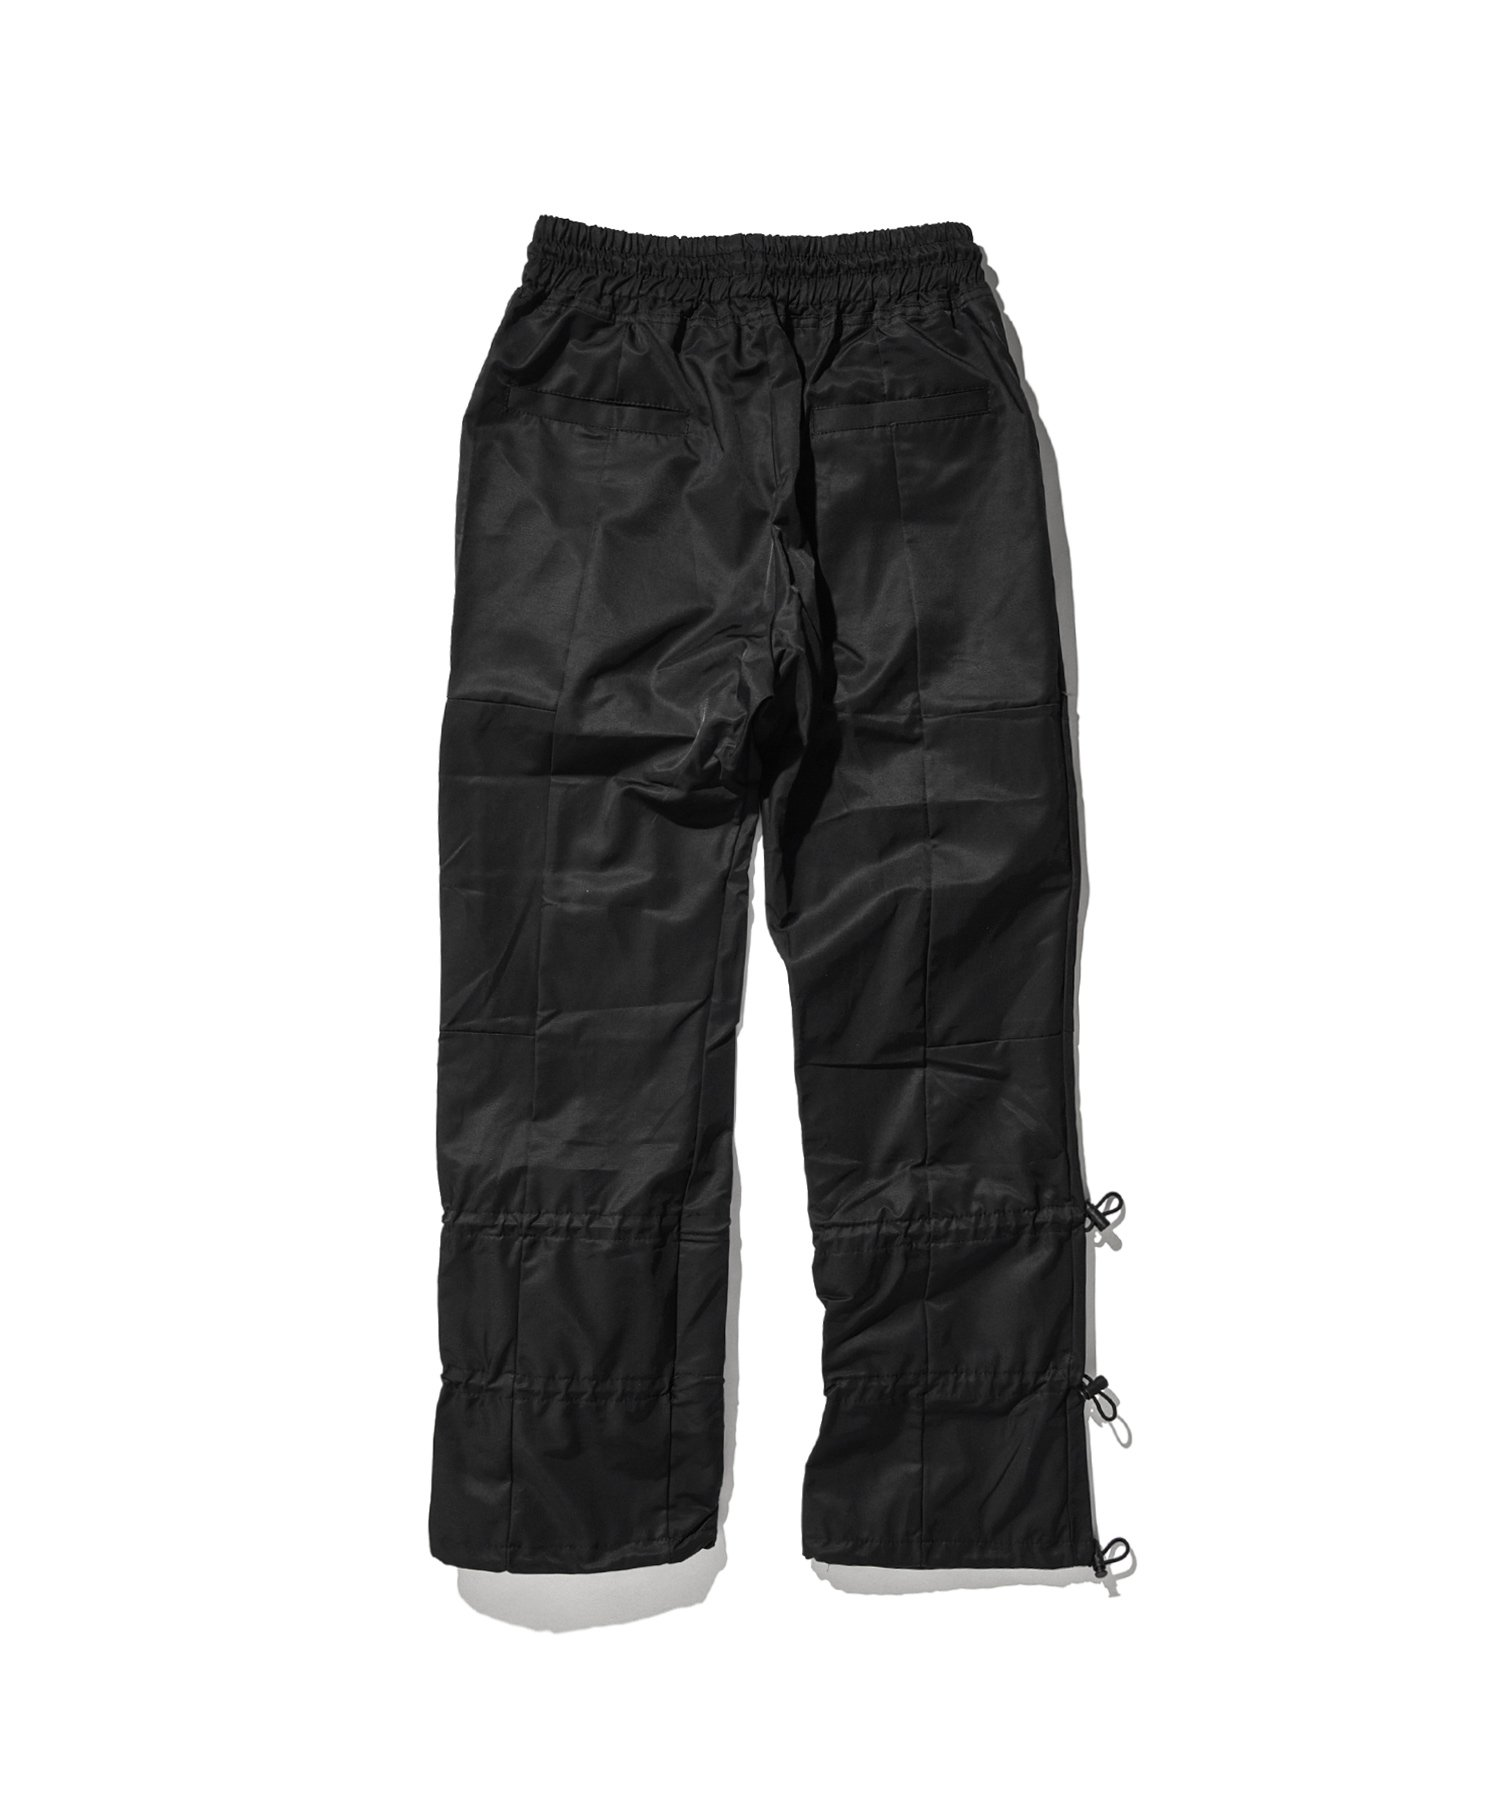 DLSM DRAWSTRING CODE STOPPER PANTS